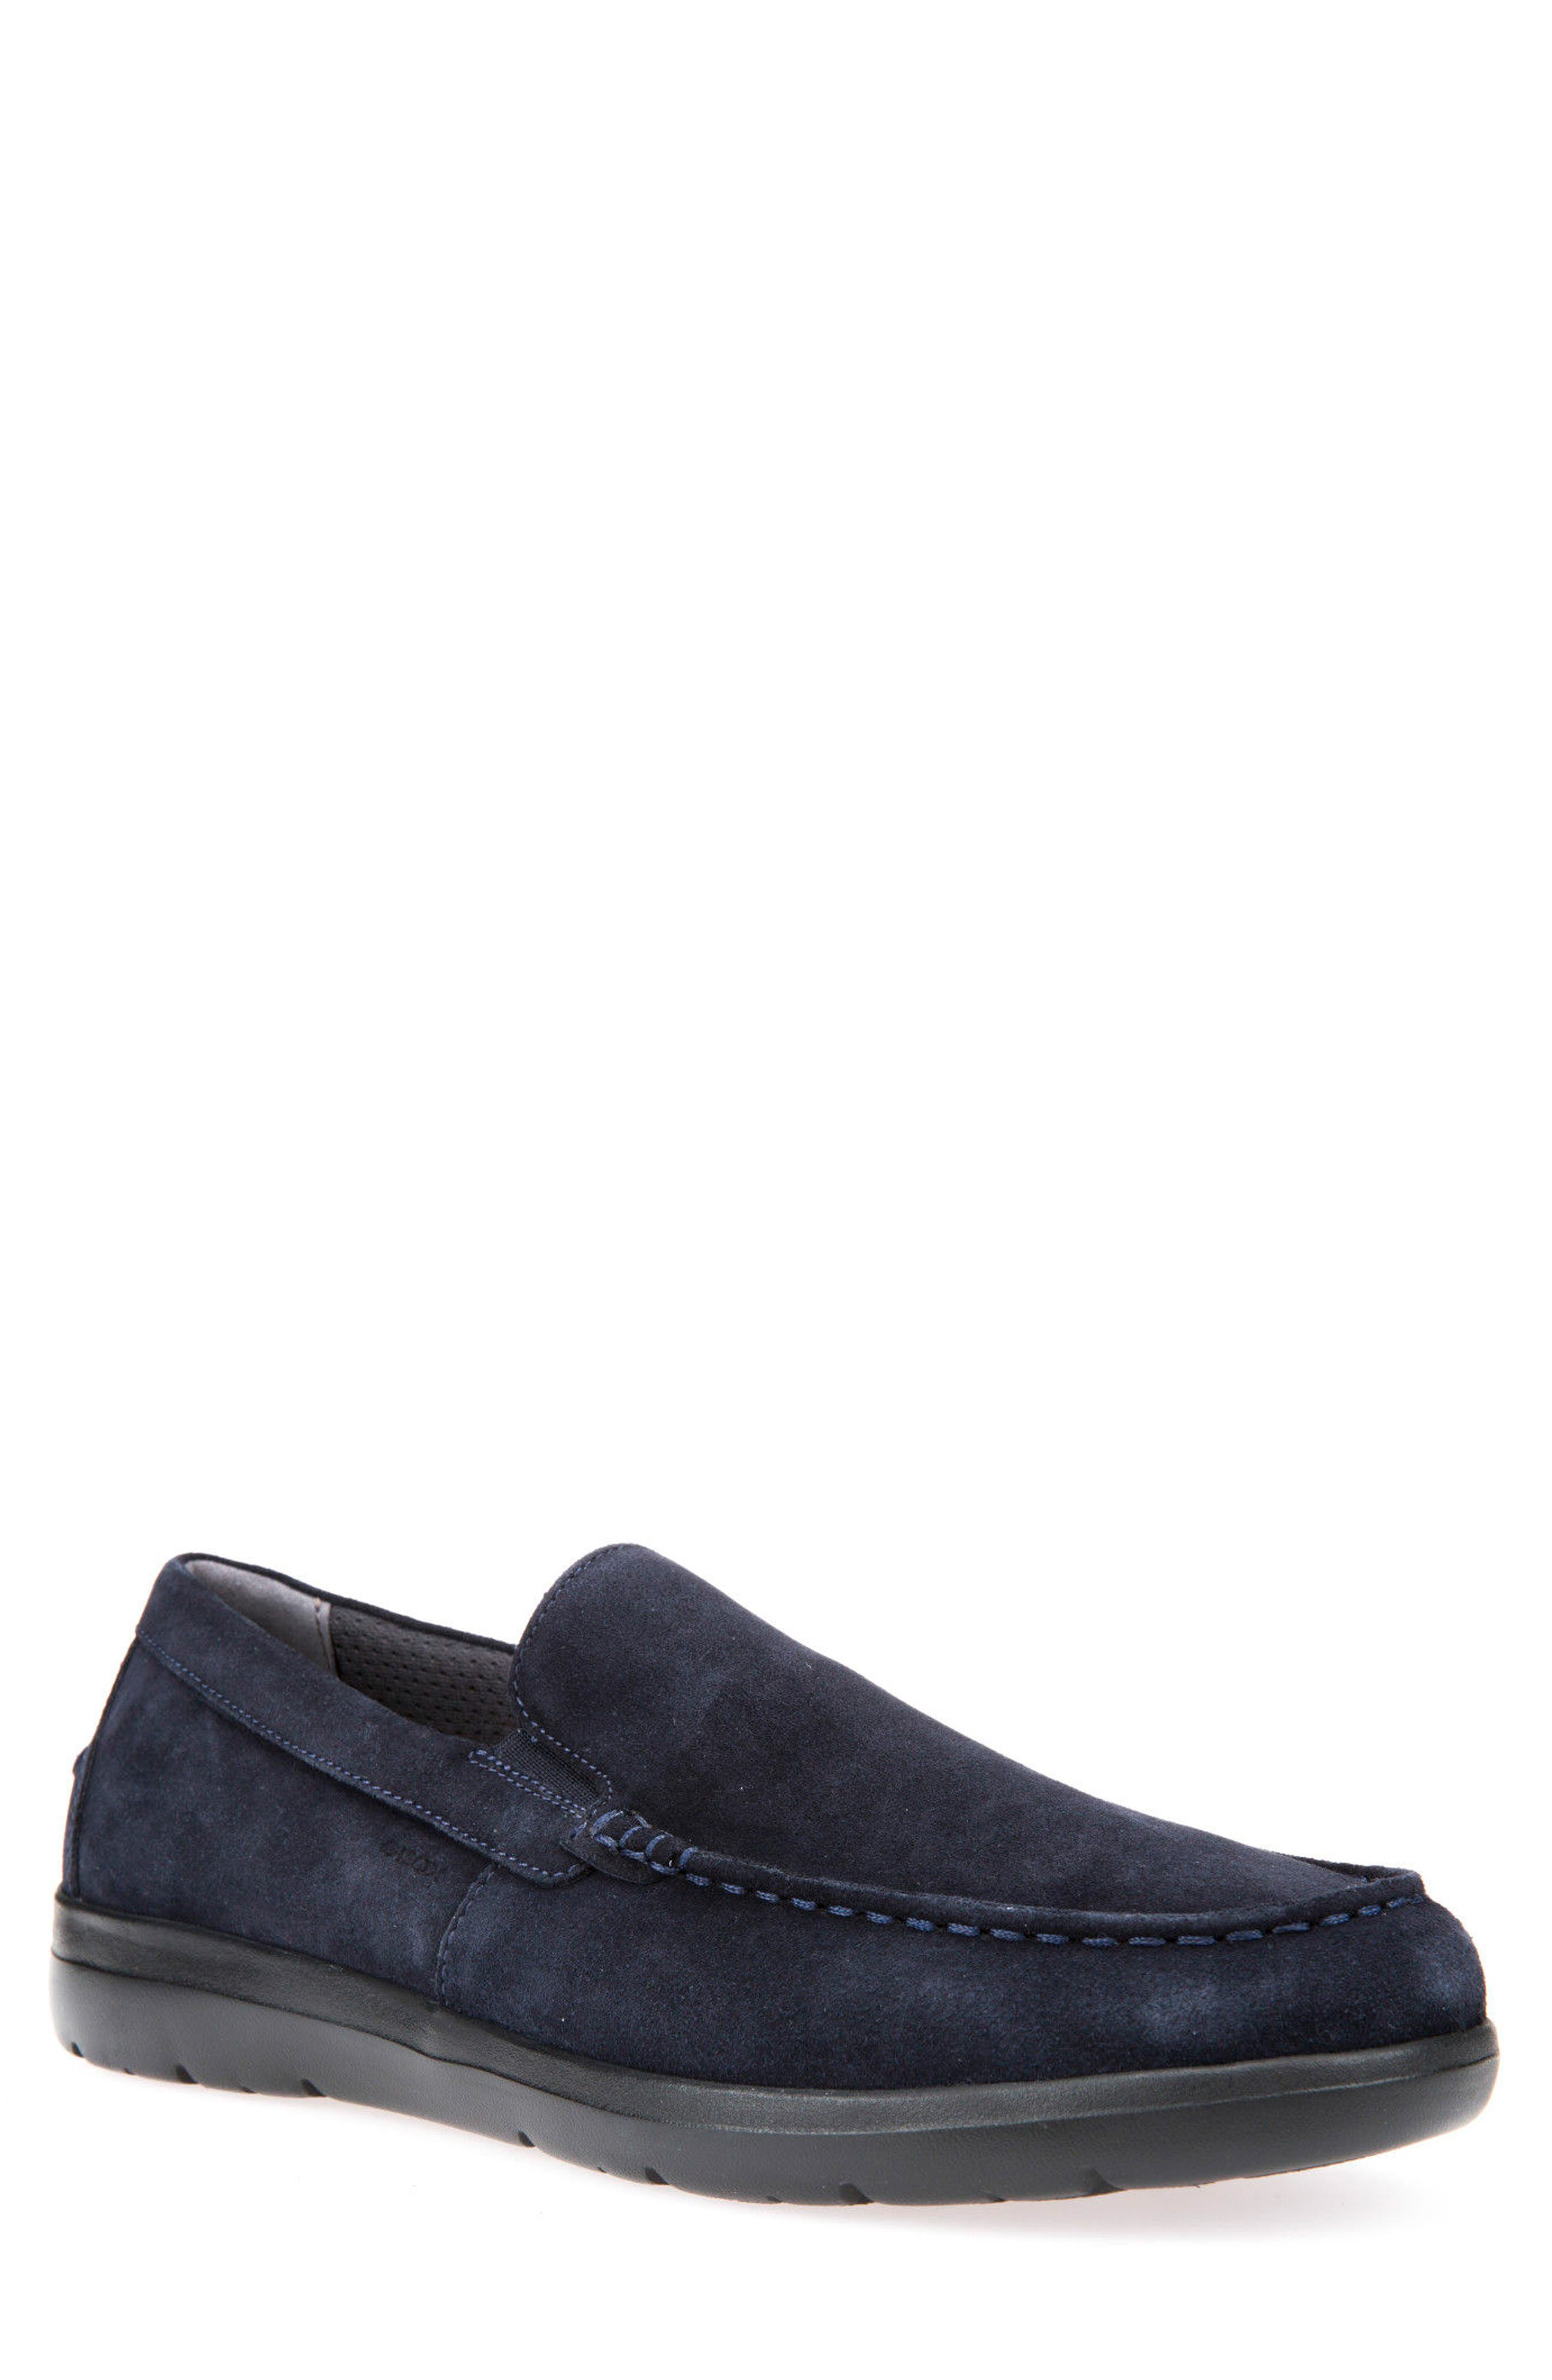 GEOX Leitan 2 Loafer